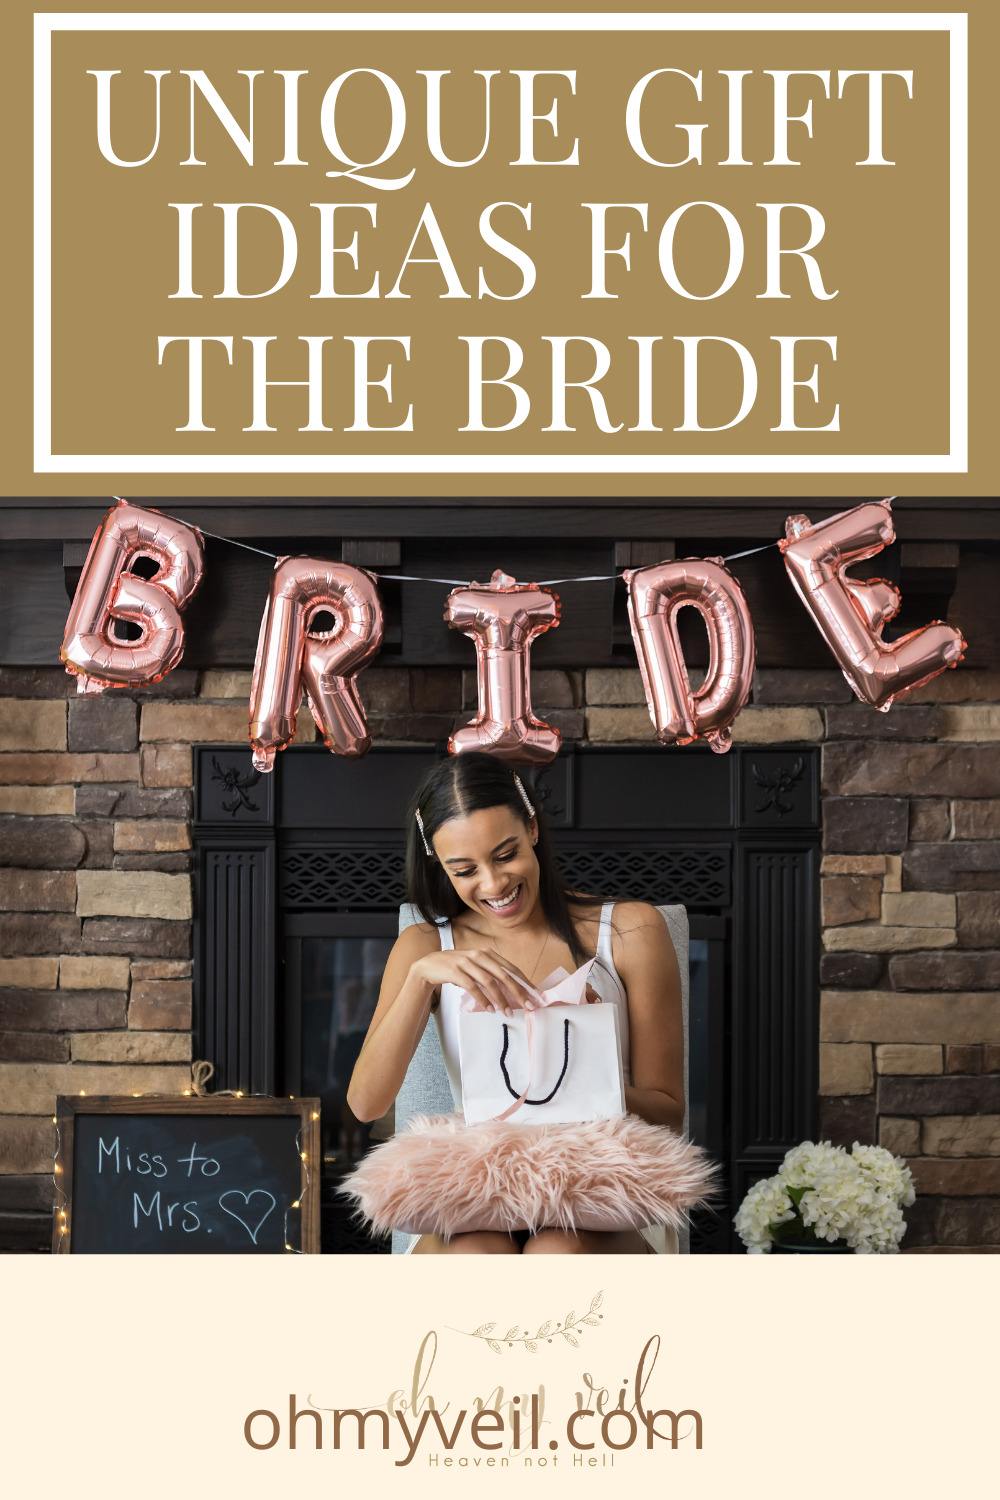 Ohmyveil.com has the best ideas for any soon-to-be-wed bride! Find totally original gift ideas she will absolutely love. Find out what you should buy her now!